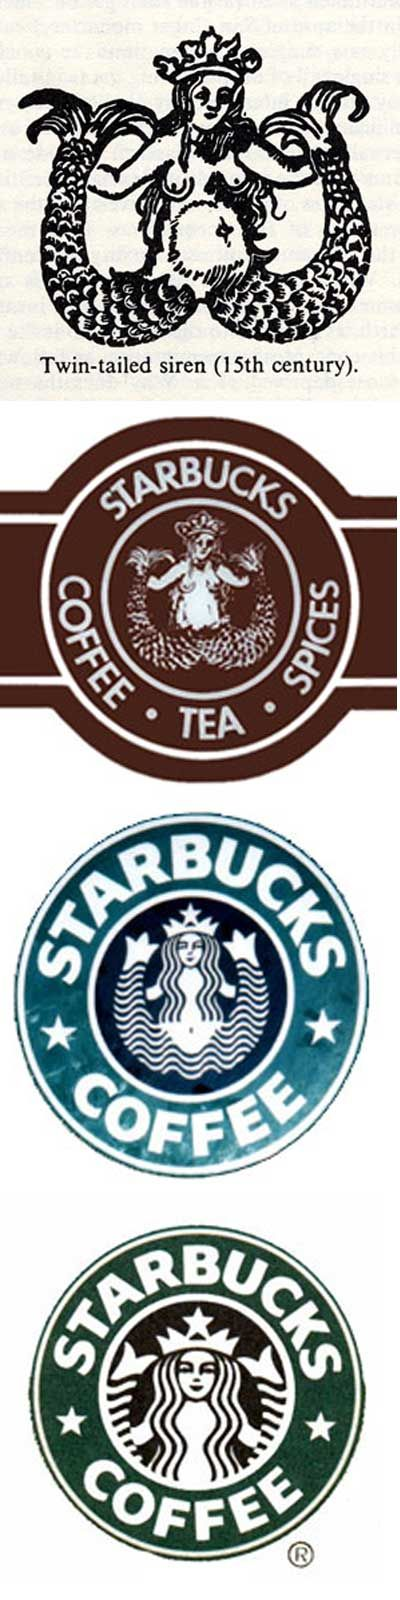 """""""It was the intention of the original Starbucks founders to use the mermaid/siren to represent the seduction of the sea going mariners. In continuing with the metaphor, they were simply replacing the sirens seductive songs with the their tasty irresistible beverages. In Moby Dick, Starbuck was a sailor who loved coffee. Sailors would jump out of boats once they heard the sirens' songs. So it means that it is irresistible."""""""